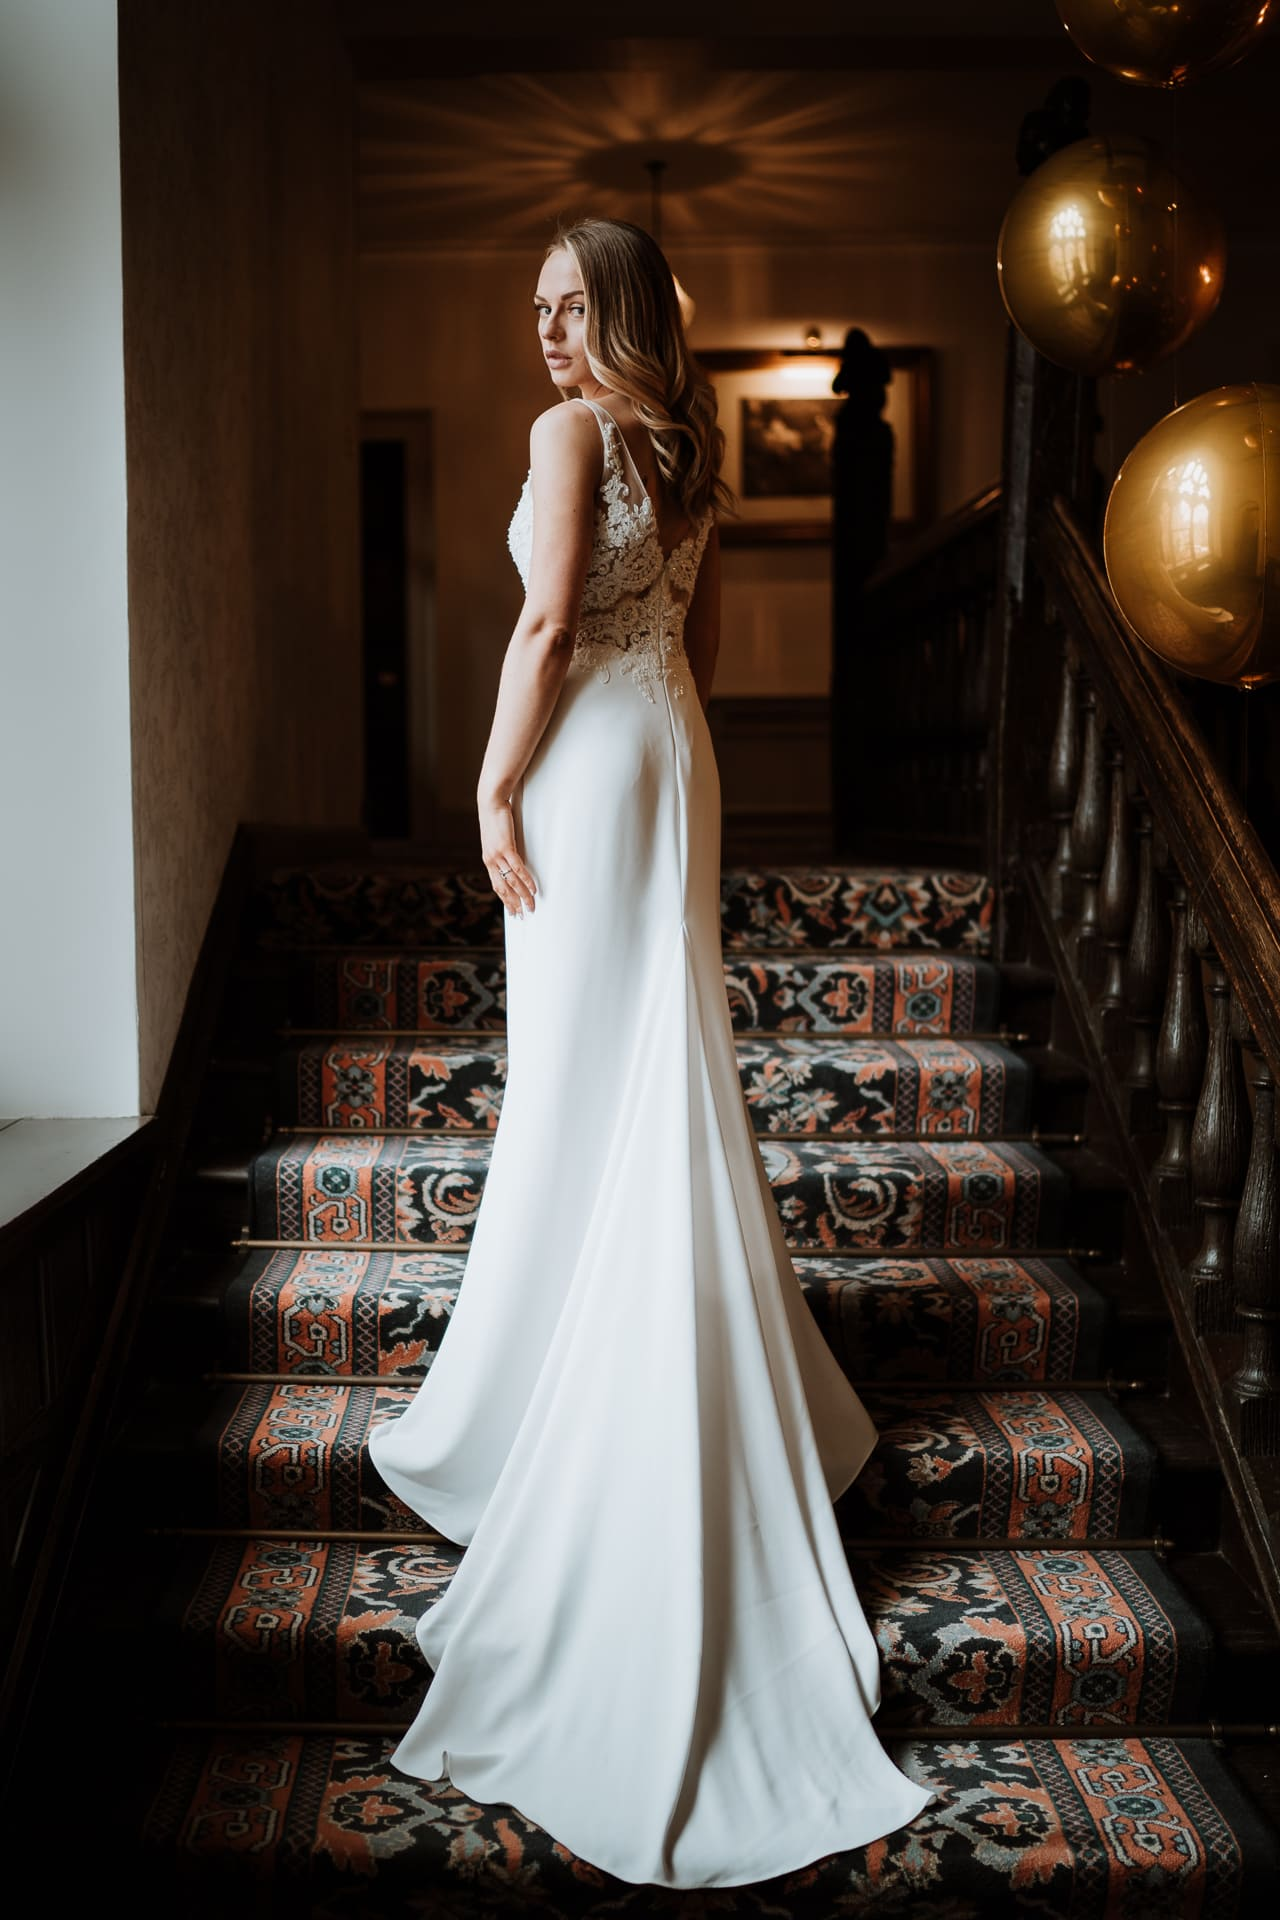 Bride on grand stairwell at Eastwell Manor